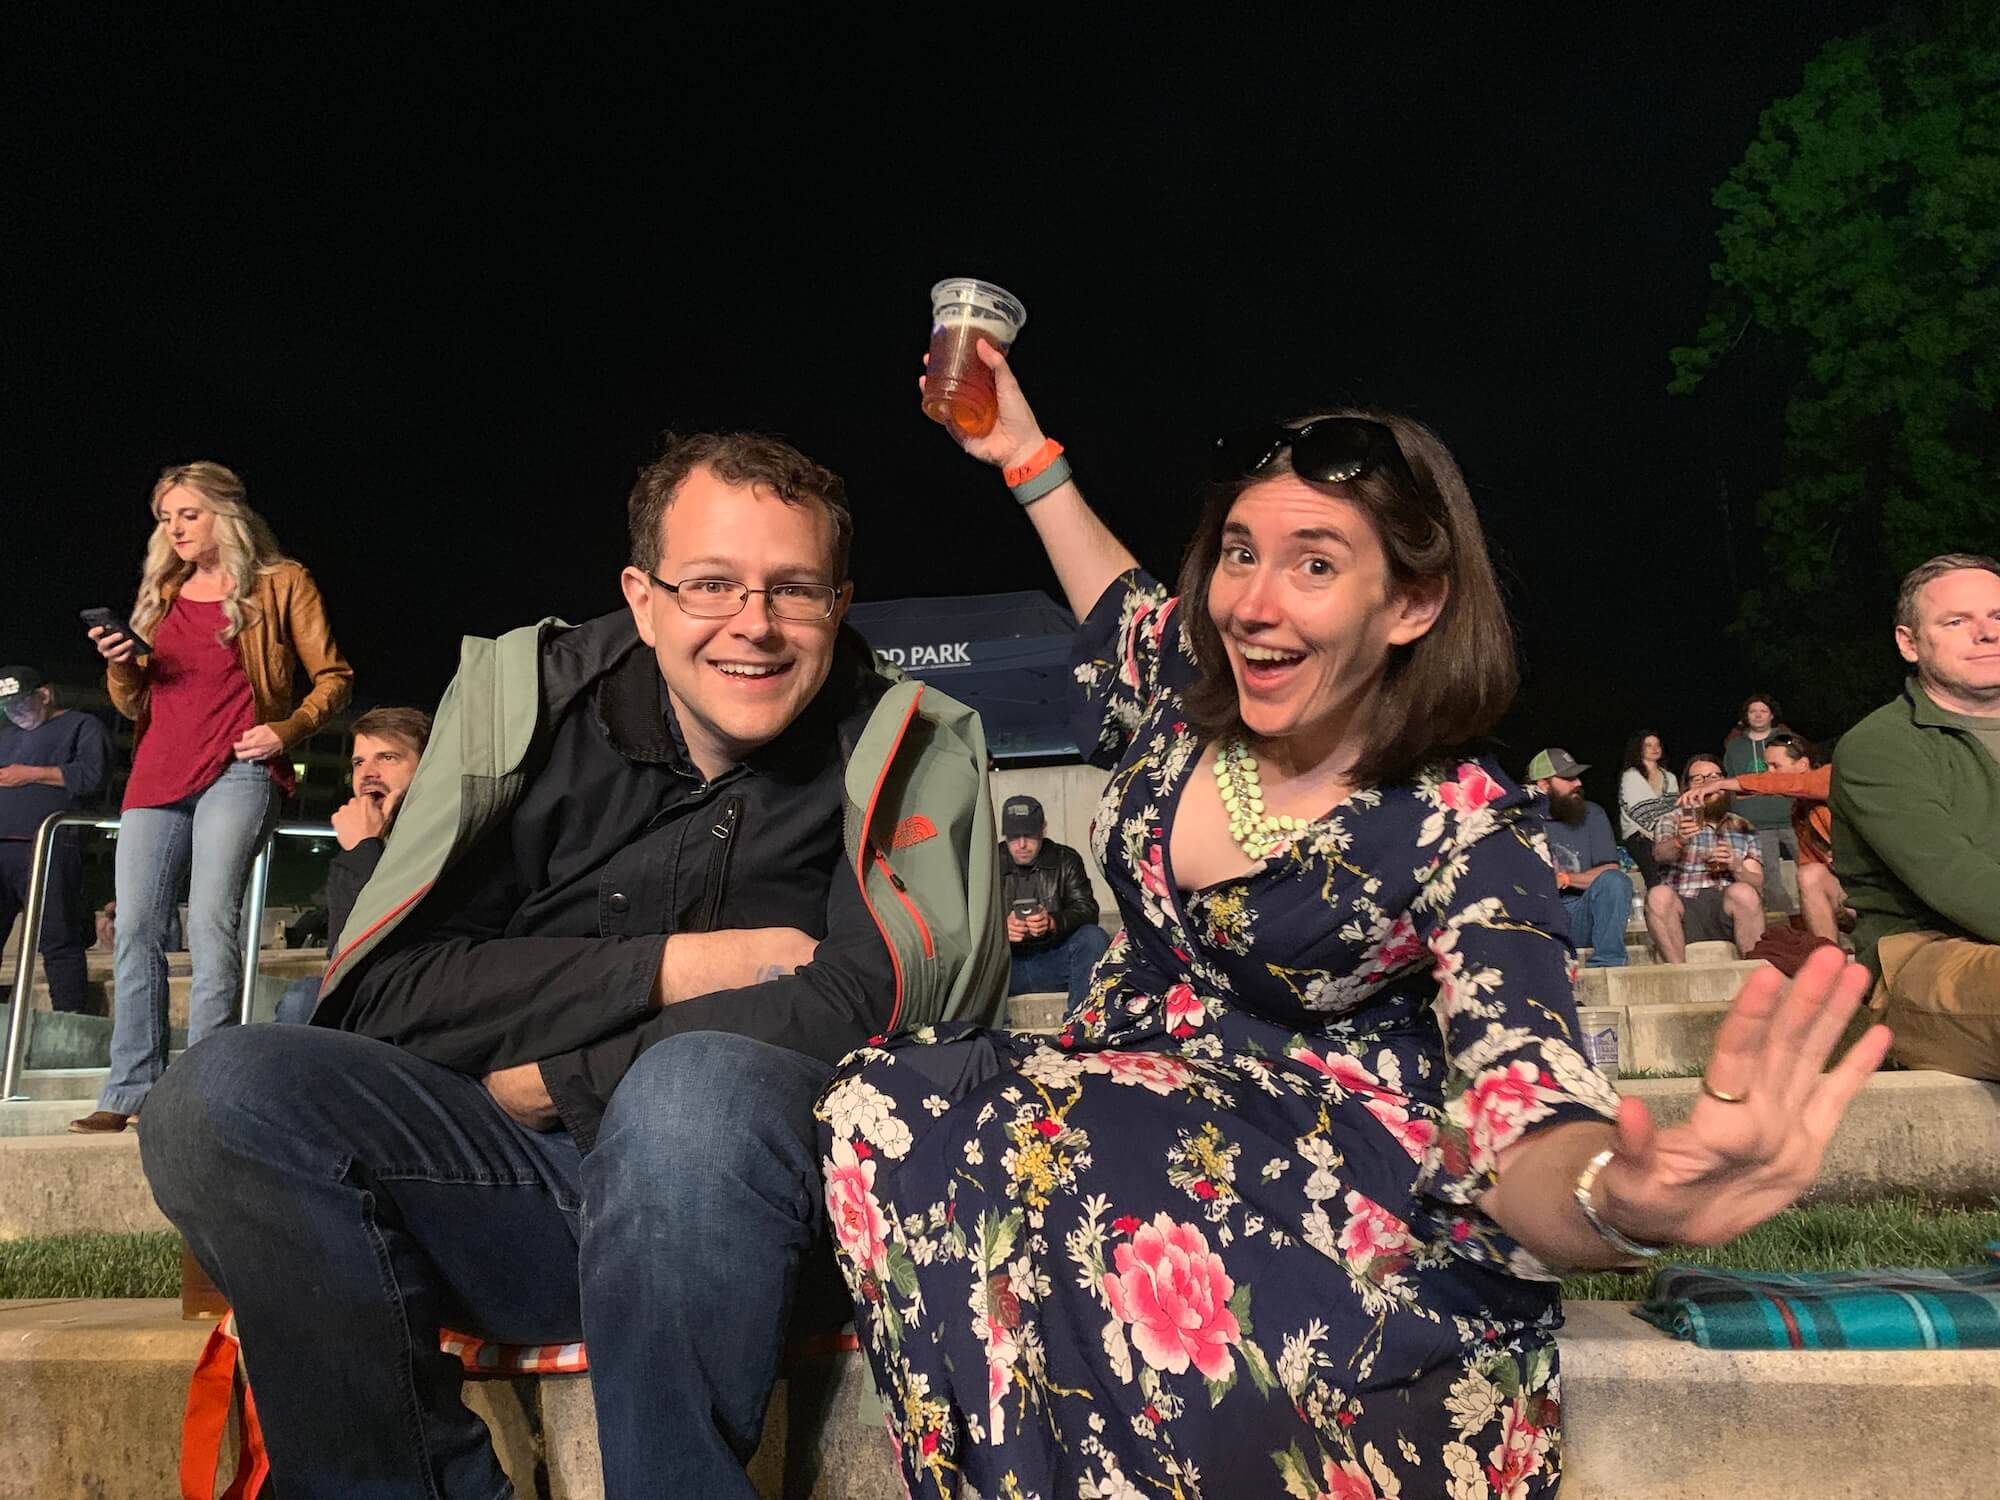 My spouse and me enjoying a concert in Elmwood Park amphitheater